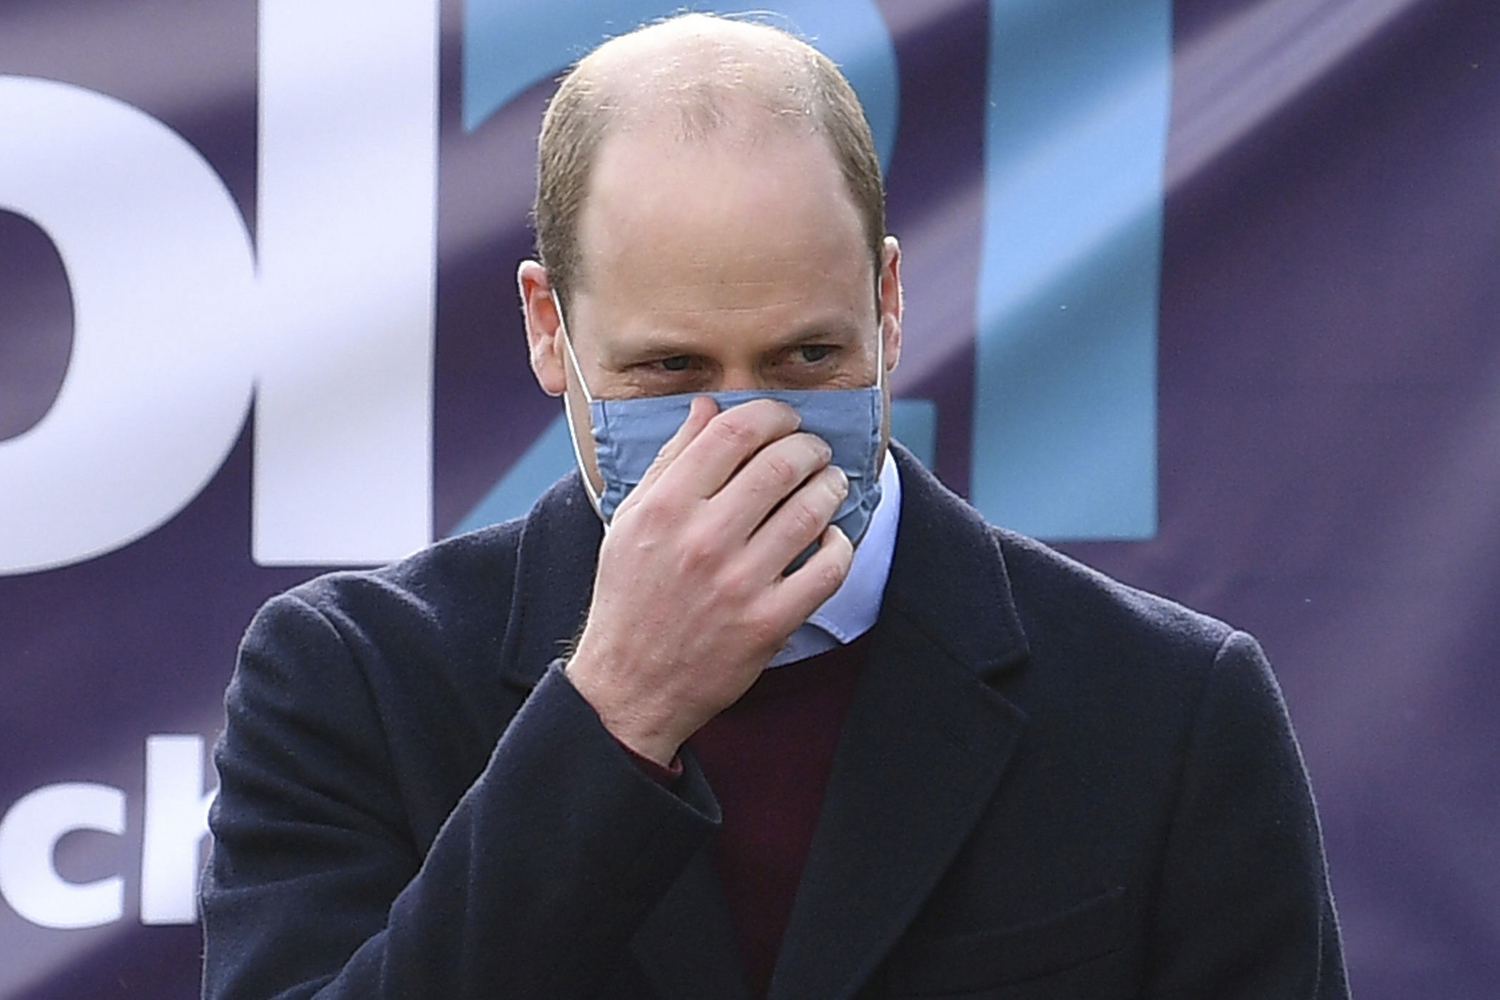 Prince William adjusts his face mask during a visit with Kate, Duchess of Cambridge to School21